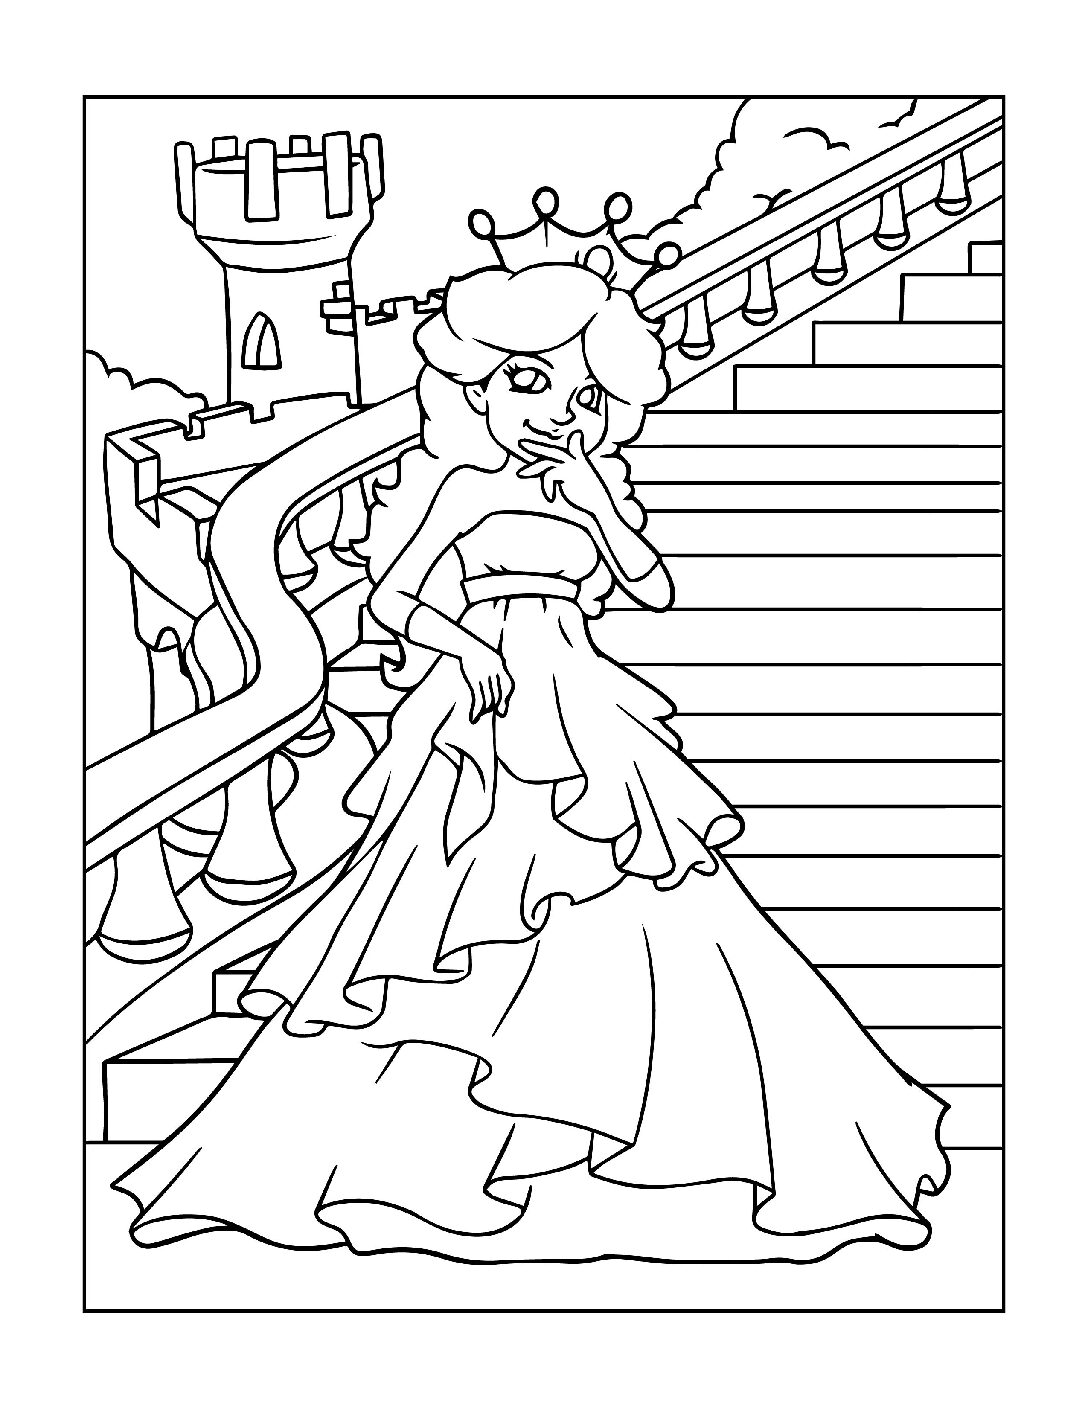 Coloring-Pages-Princess-2-01-pdf Free Printable Princesses Colouring Pages